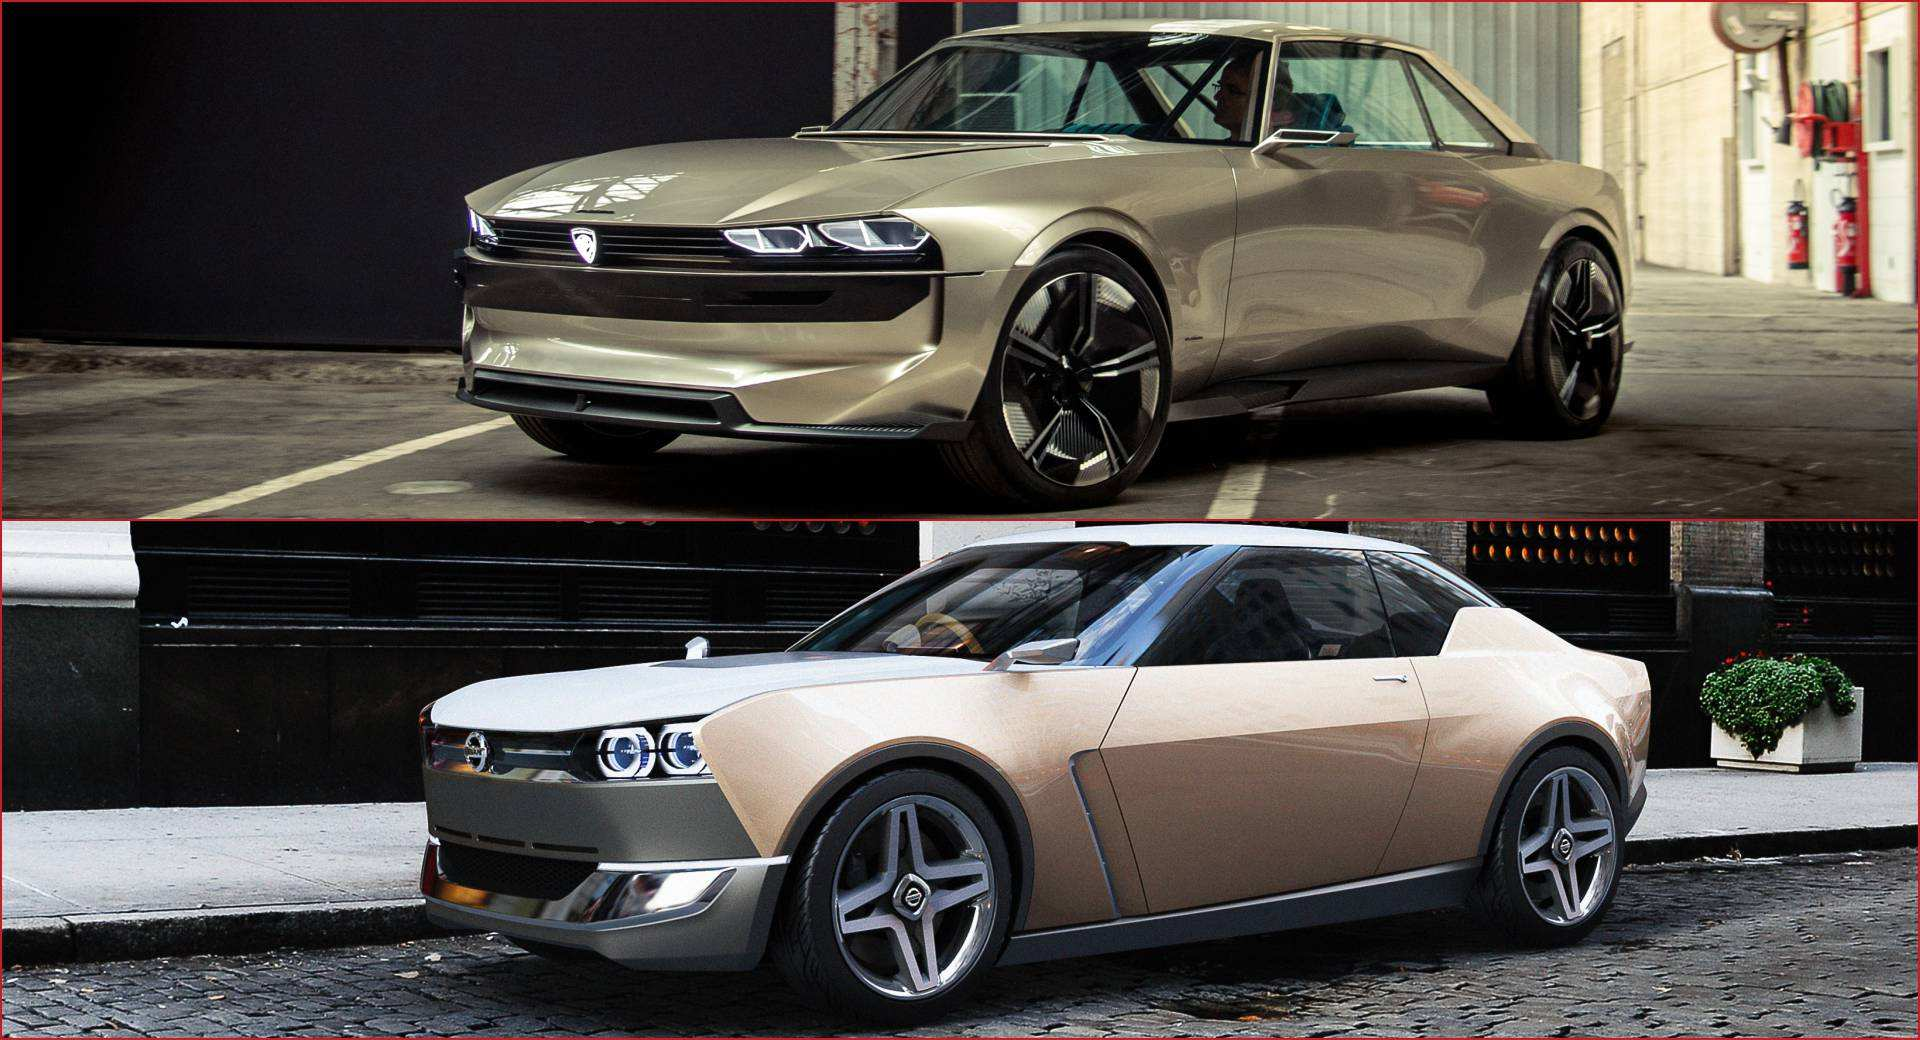 51 Concept of Nissan Idx 2020 Interior by Nissan Idx 2020